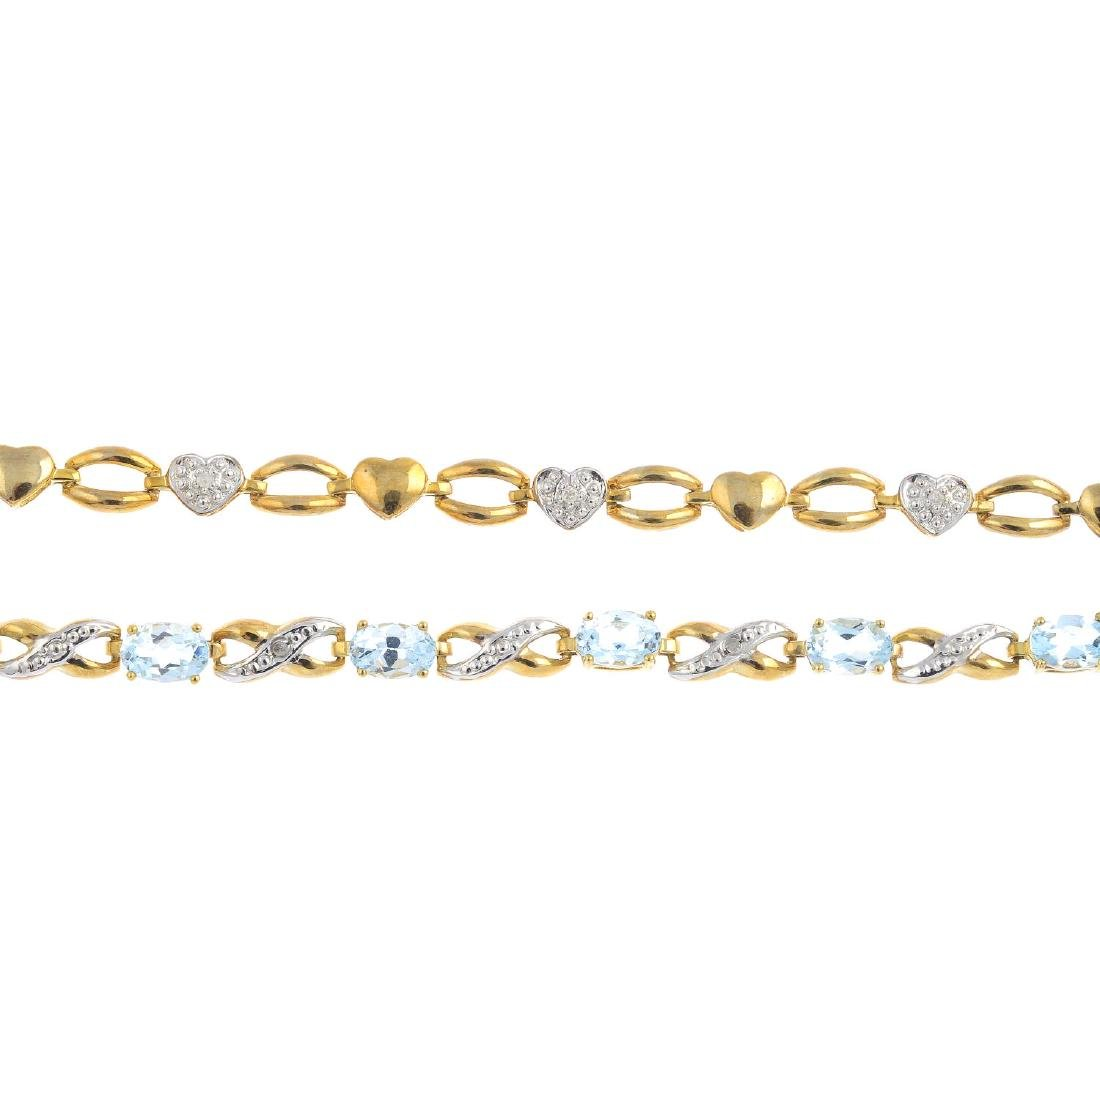 Two 9ct gold diamond and gem-set bracelets. The first